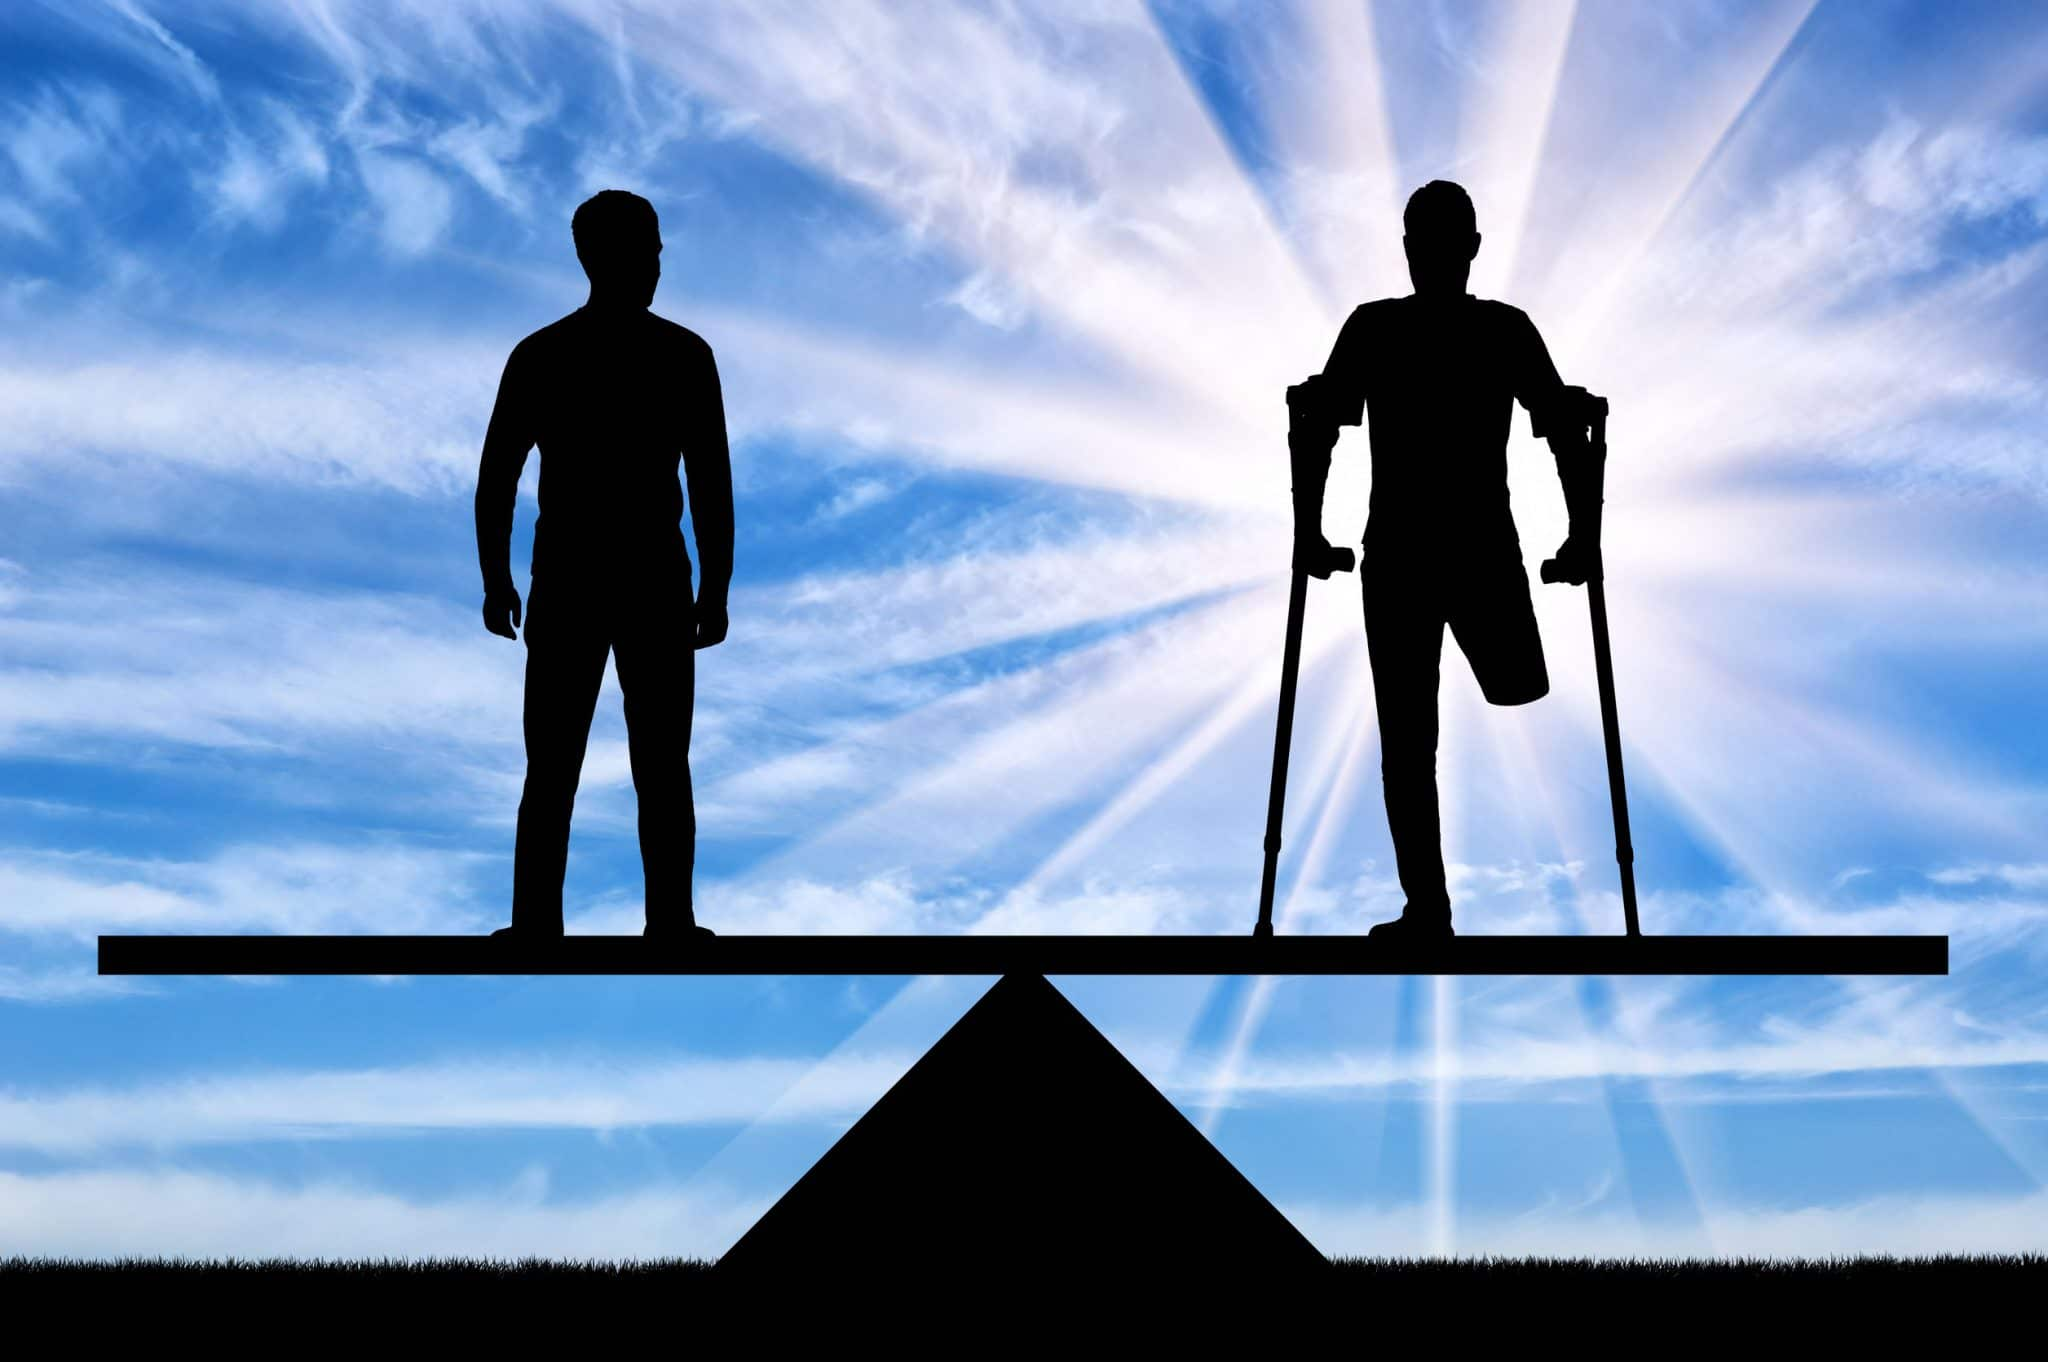 ADA Persons with disabilities have equal rights in the balance with healthy people. Concept of social equality of disabled people in society